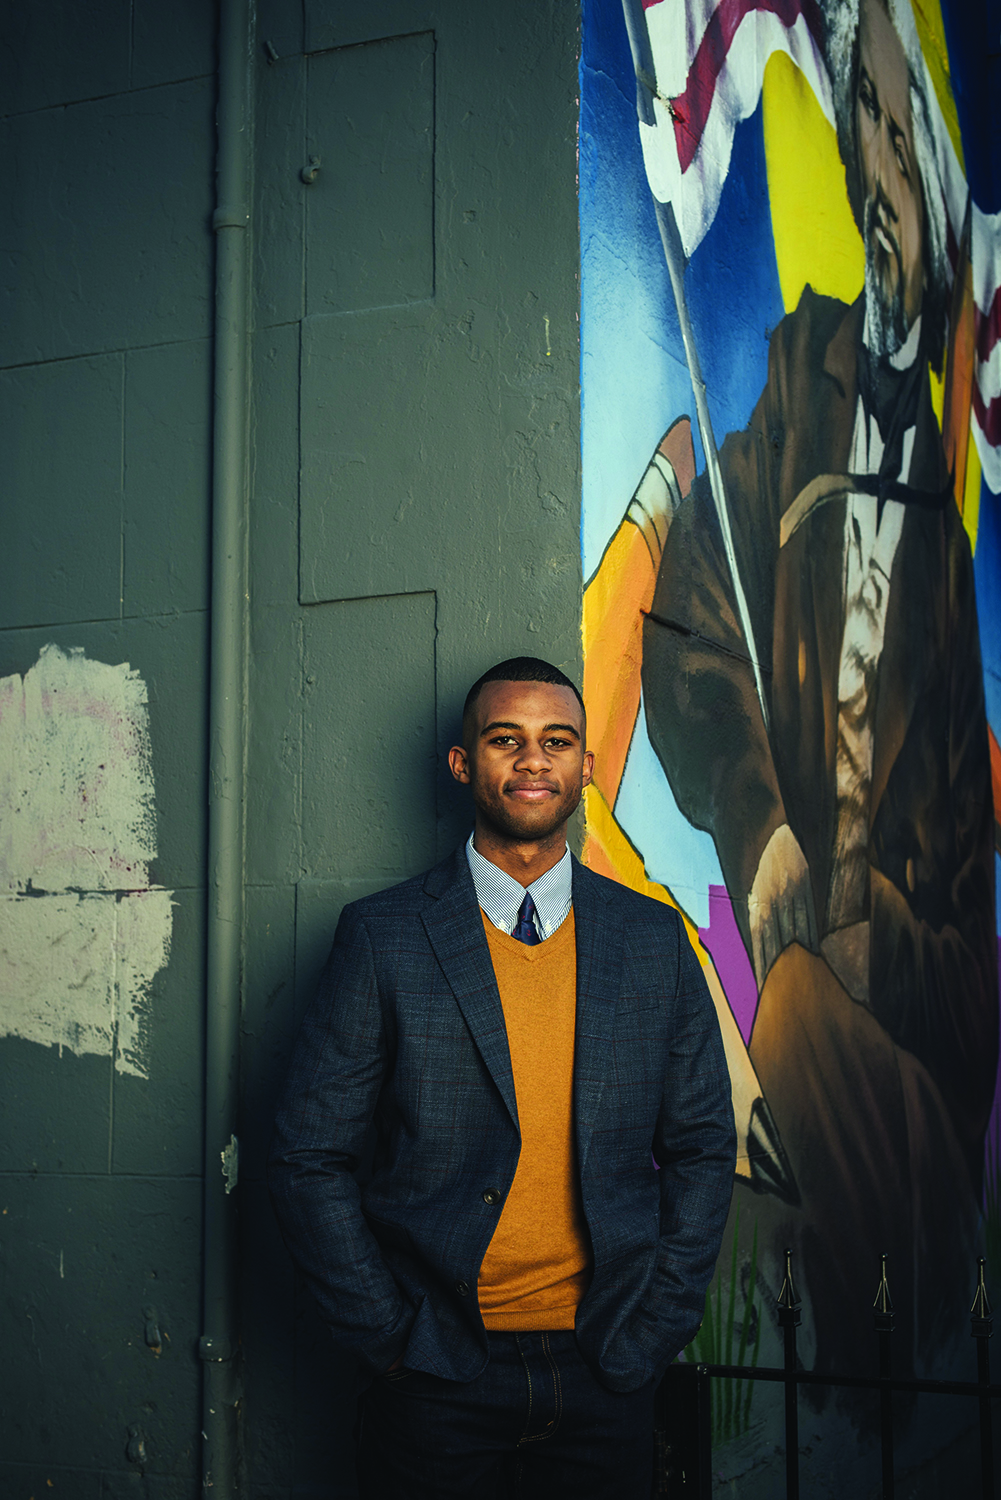 Portrait of Dig Deep founder Jaelon Moaney in Washington, D.C.